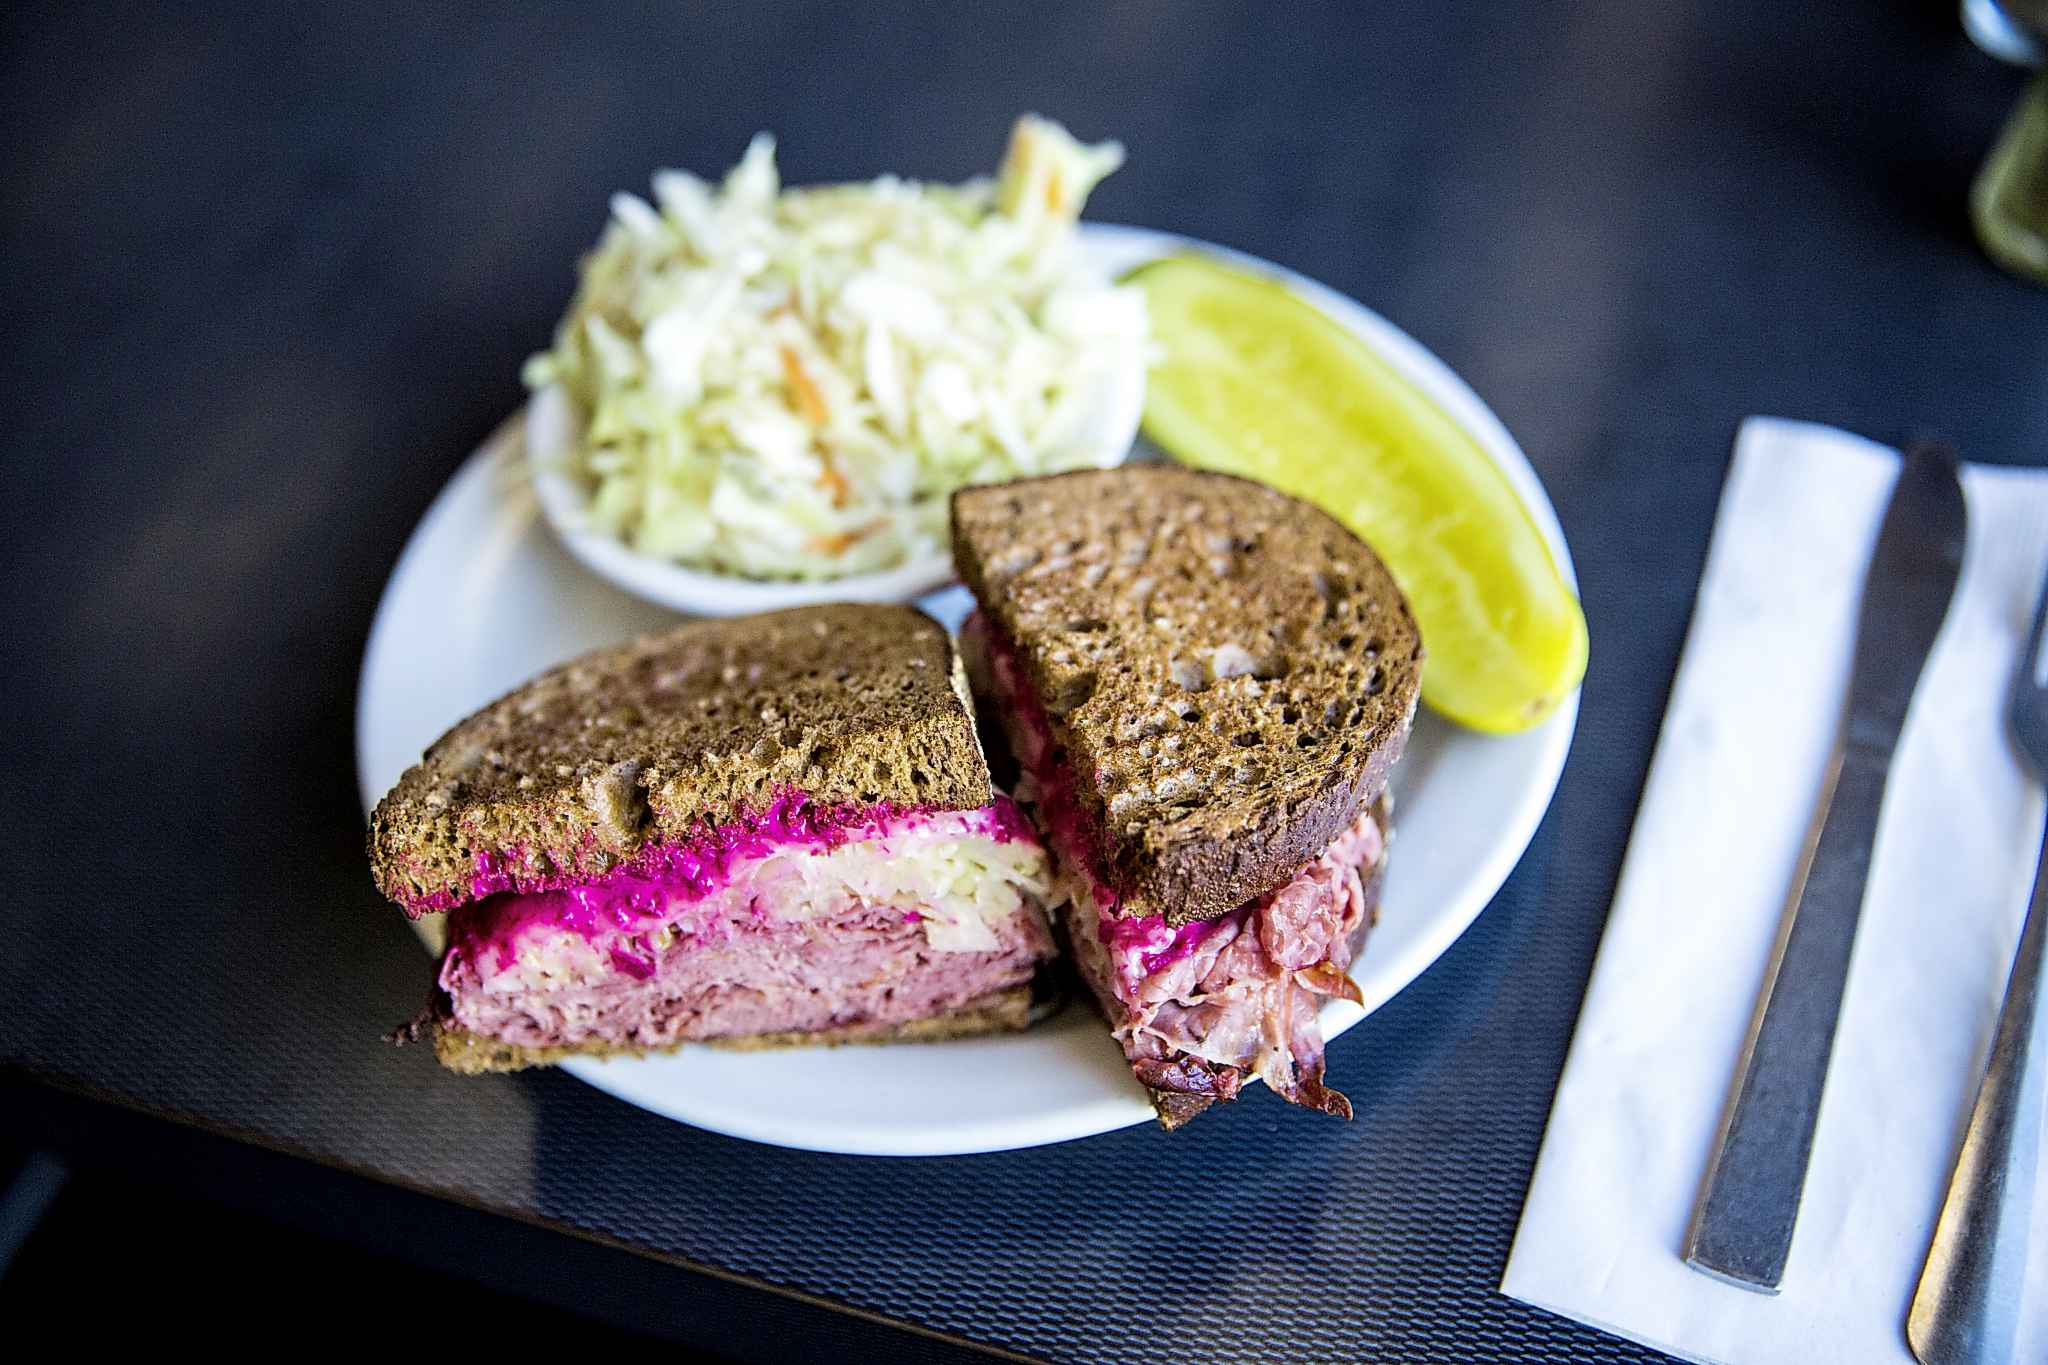 The Rubin sandwich at Oscar's Deli uses a variation on the classic sandwich's spelling and also departs slightly from the standard ingredients. (Mikaela MacKenzie / Winnipeg Free Press)